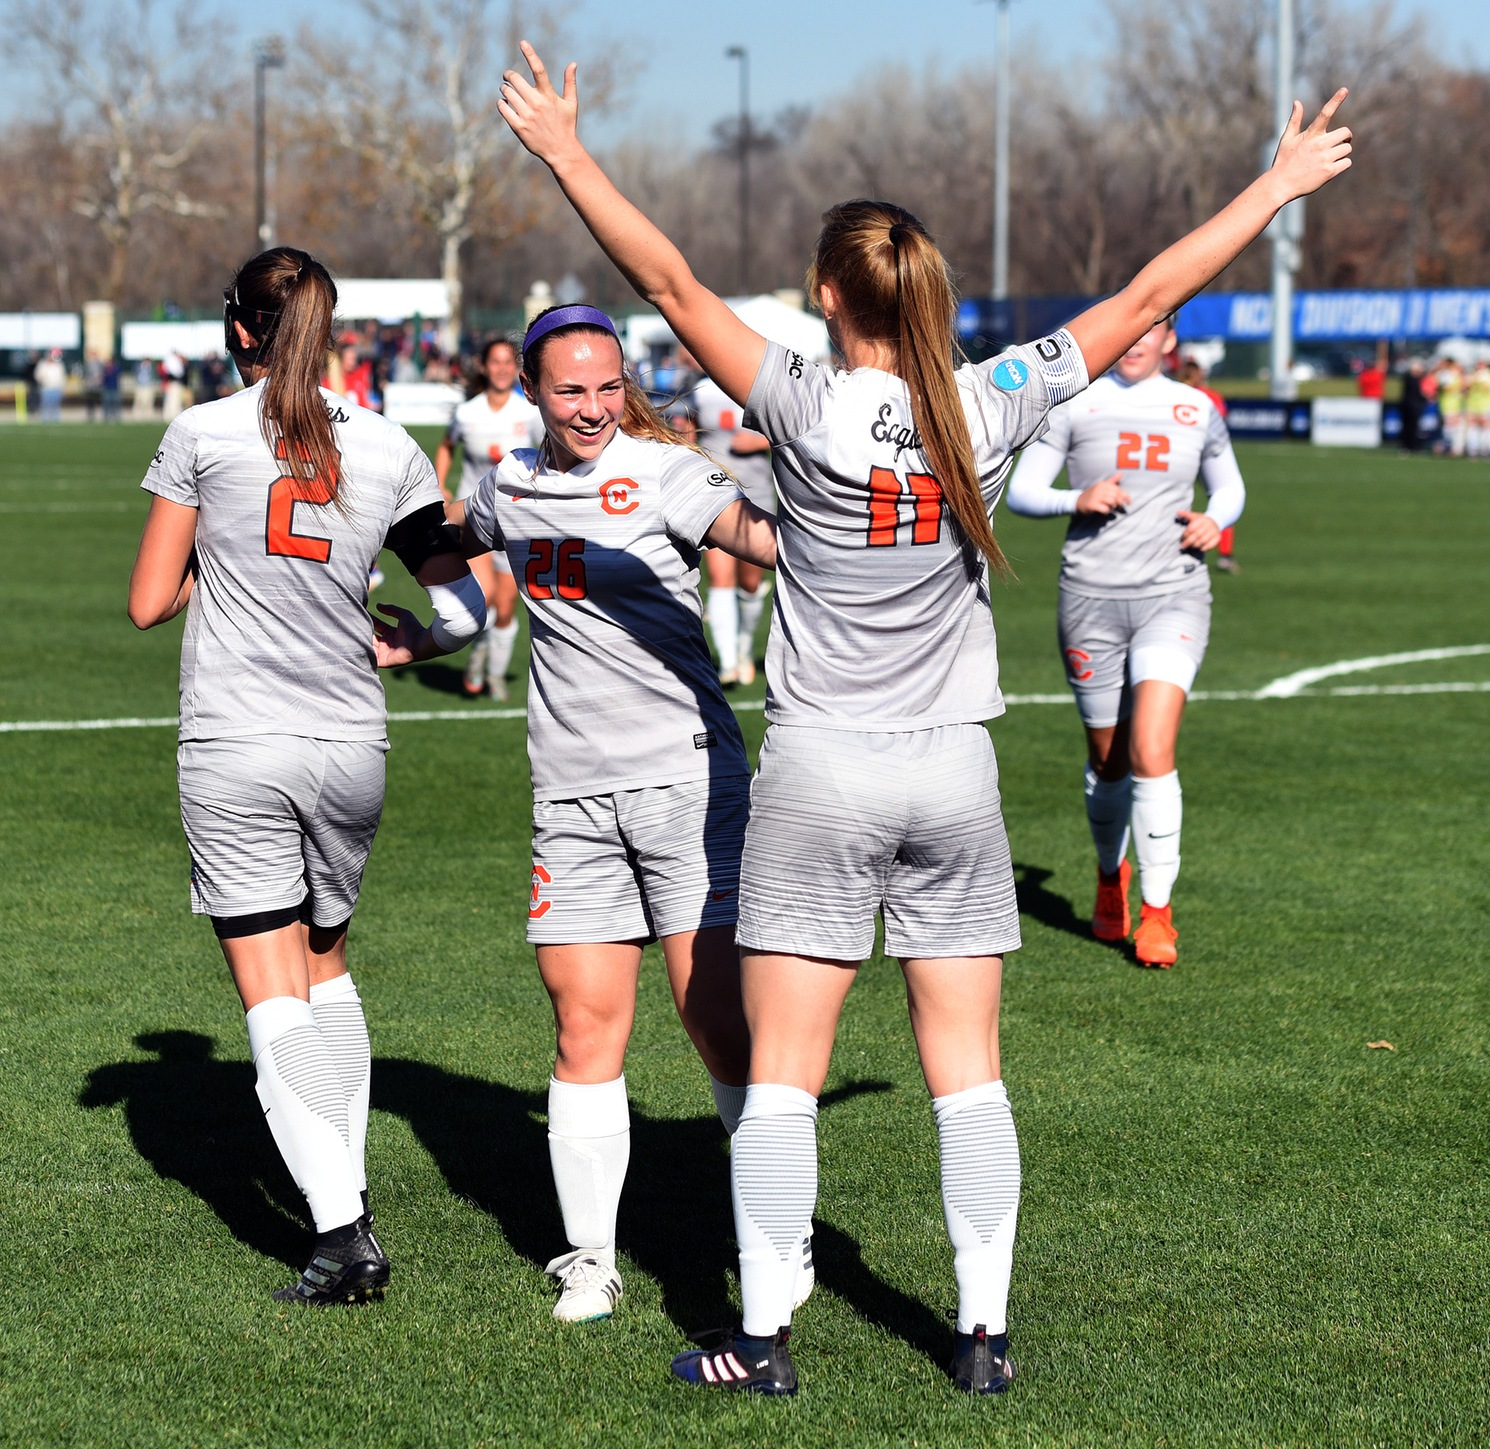 Historic season comes to a close for Carson-Newman in National title match